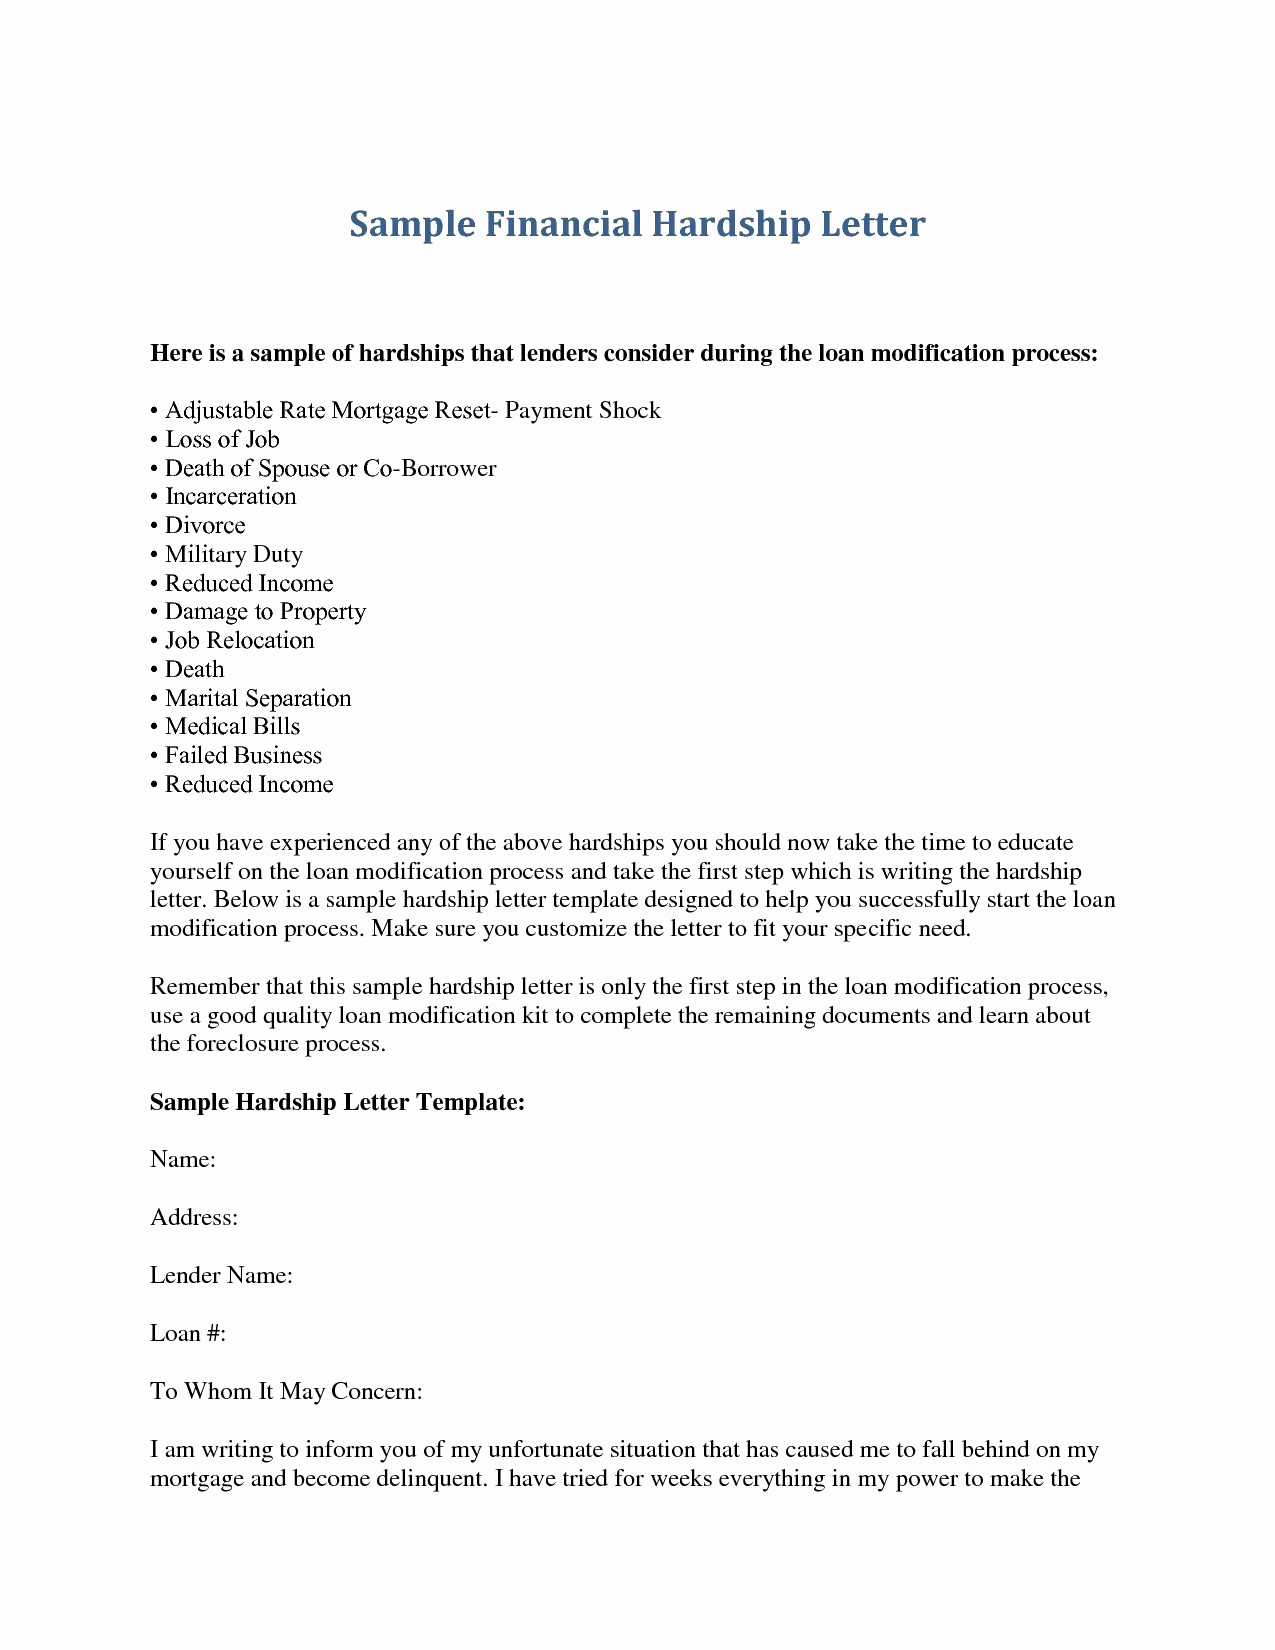 mortgage hardship letter template example-Immigration Hardship Letter for A Friend New Sample Good Moral Character Letter for Medical School Archives 20-d